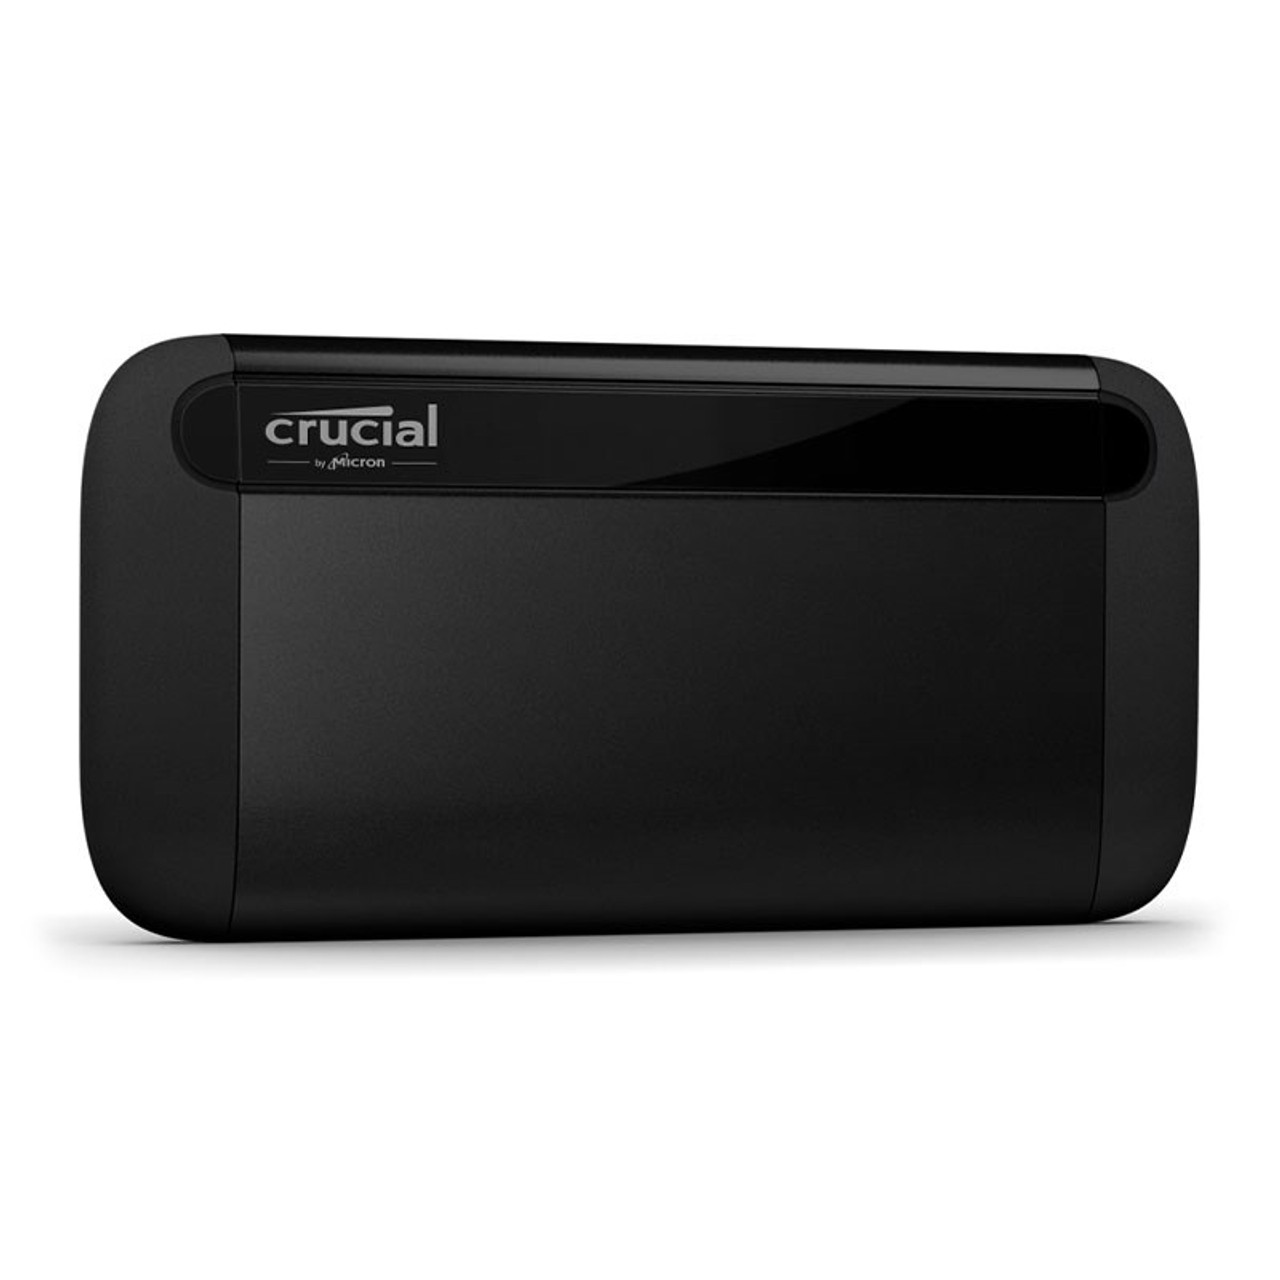 Image for Crucial X8 500GB USB 3.2 Gen2 Type-C External Portable SSD CT500X8SSD9 CX Computer Superstore